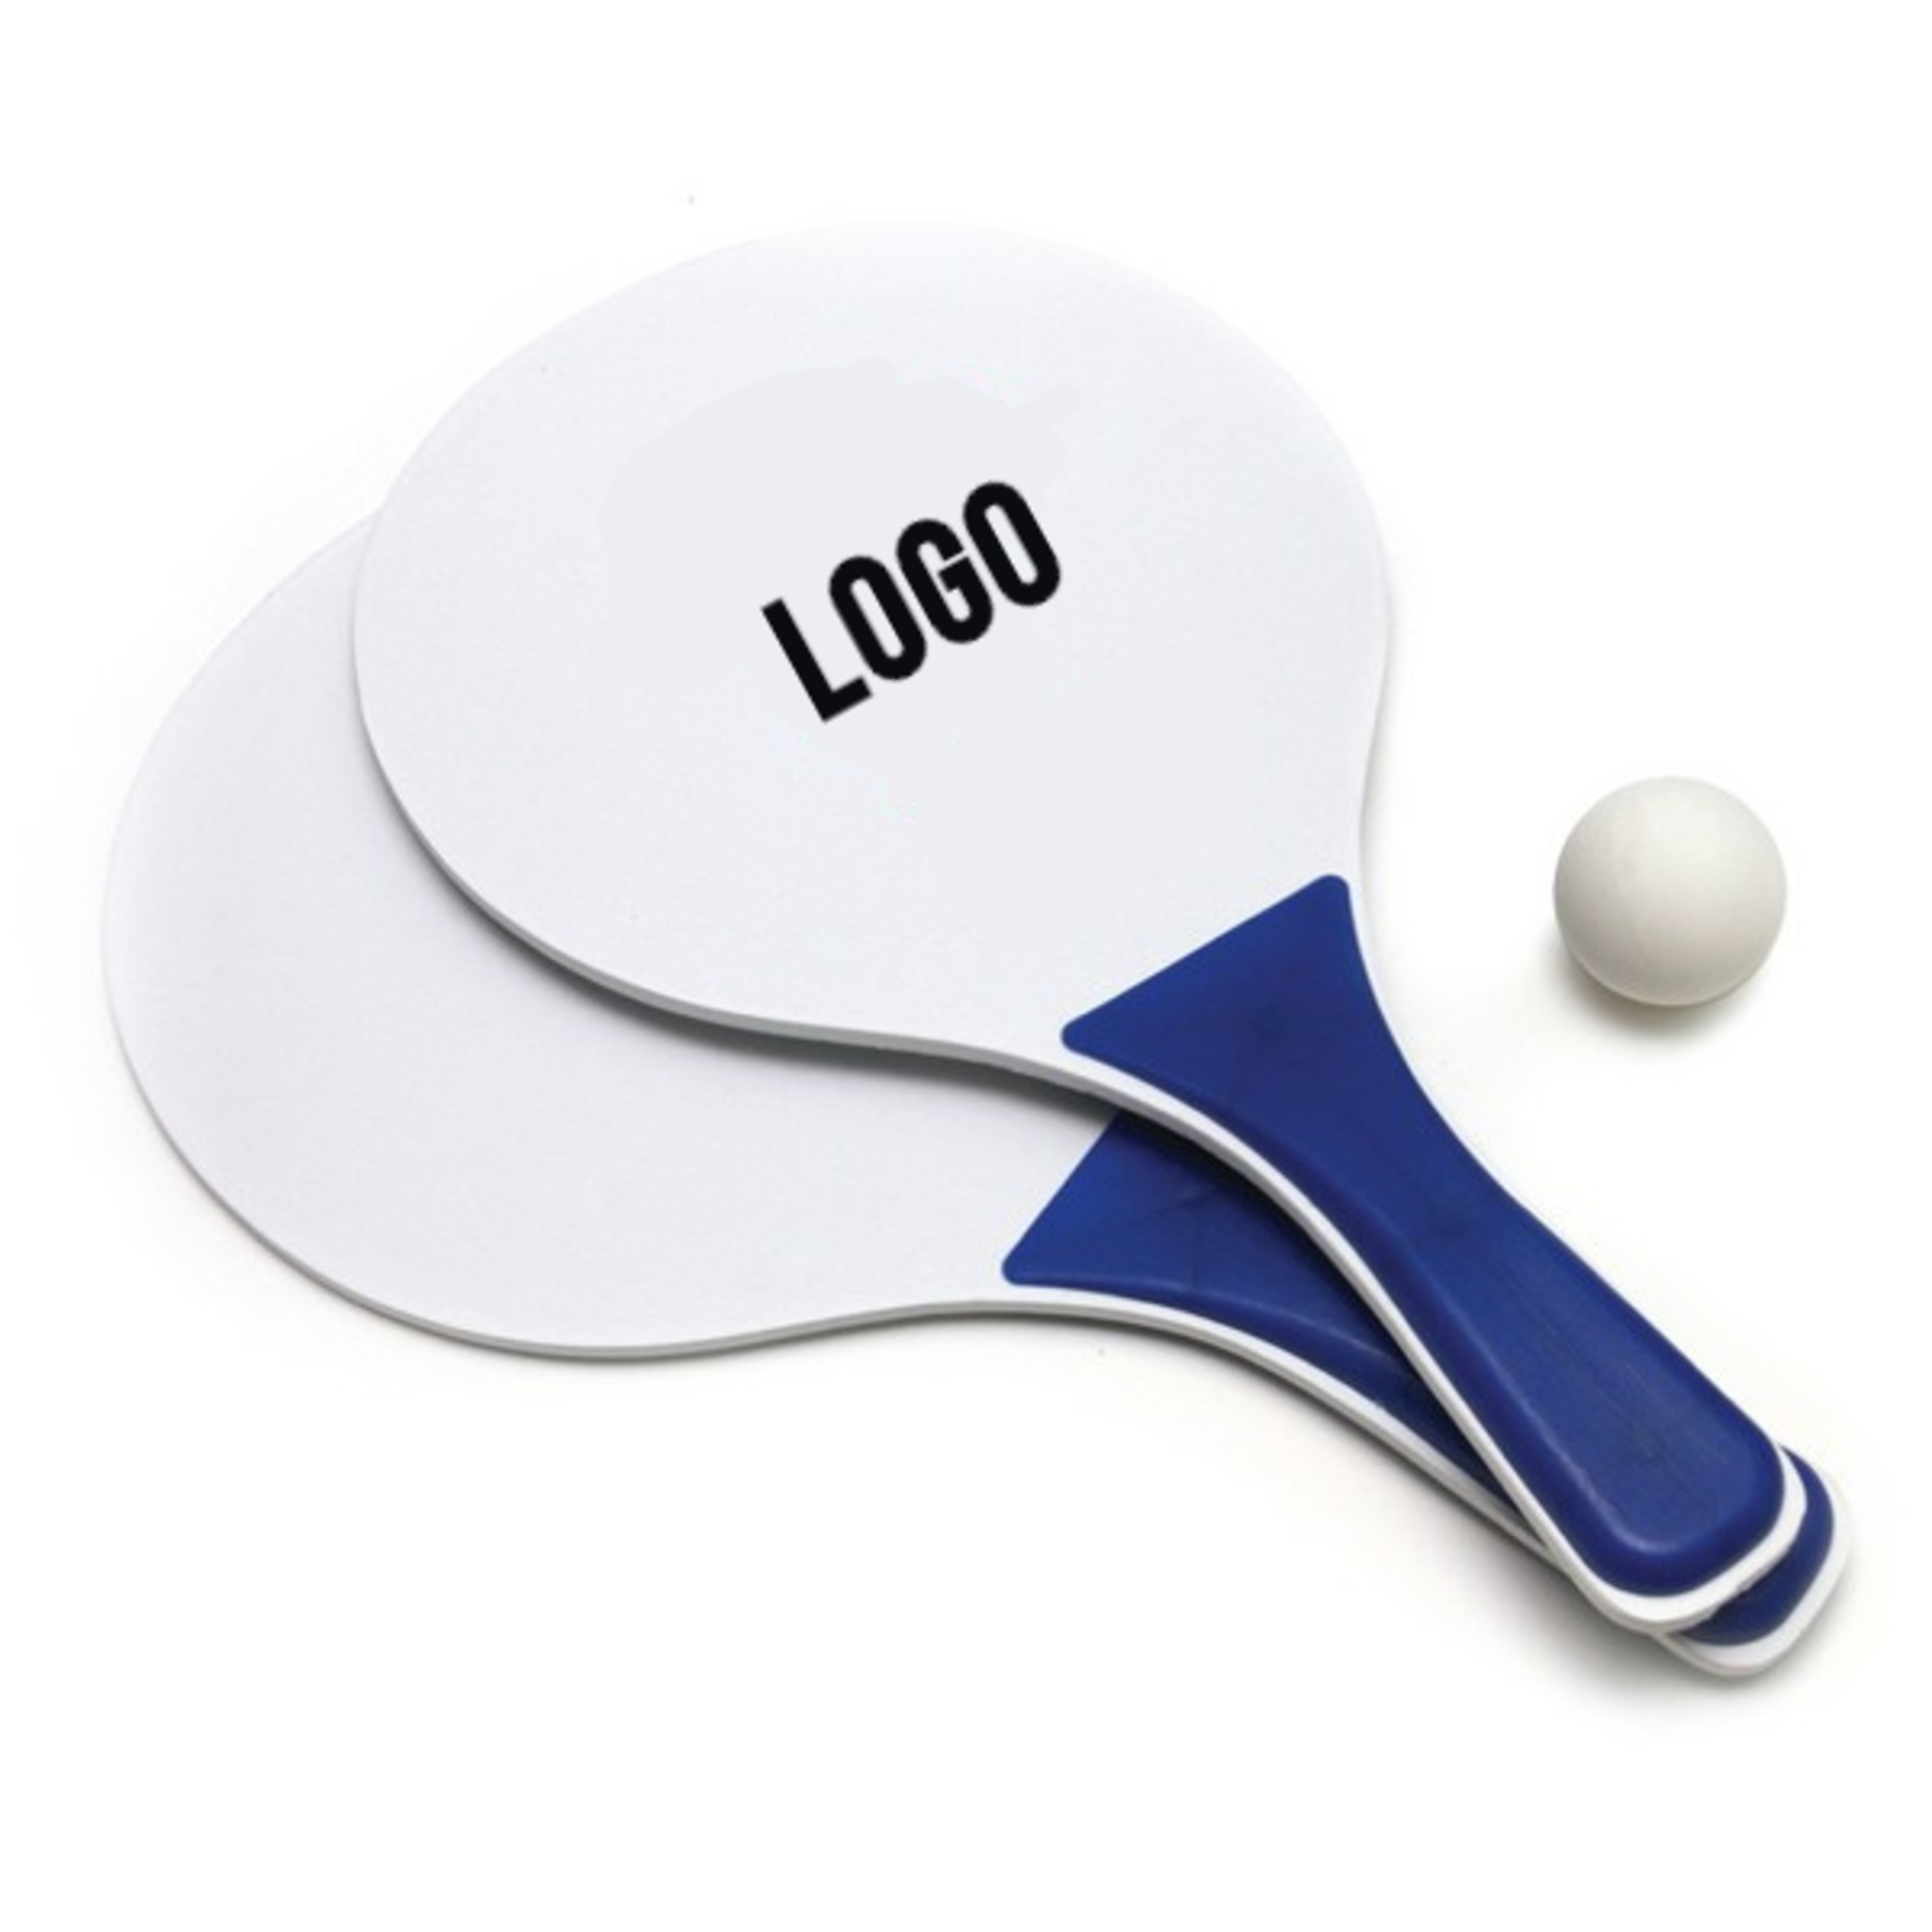 The Paddle Ball Set